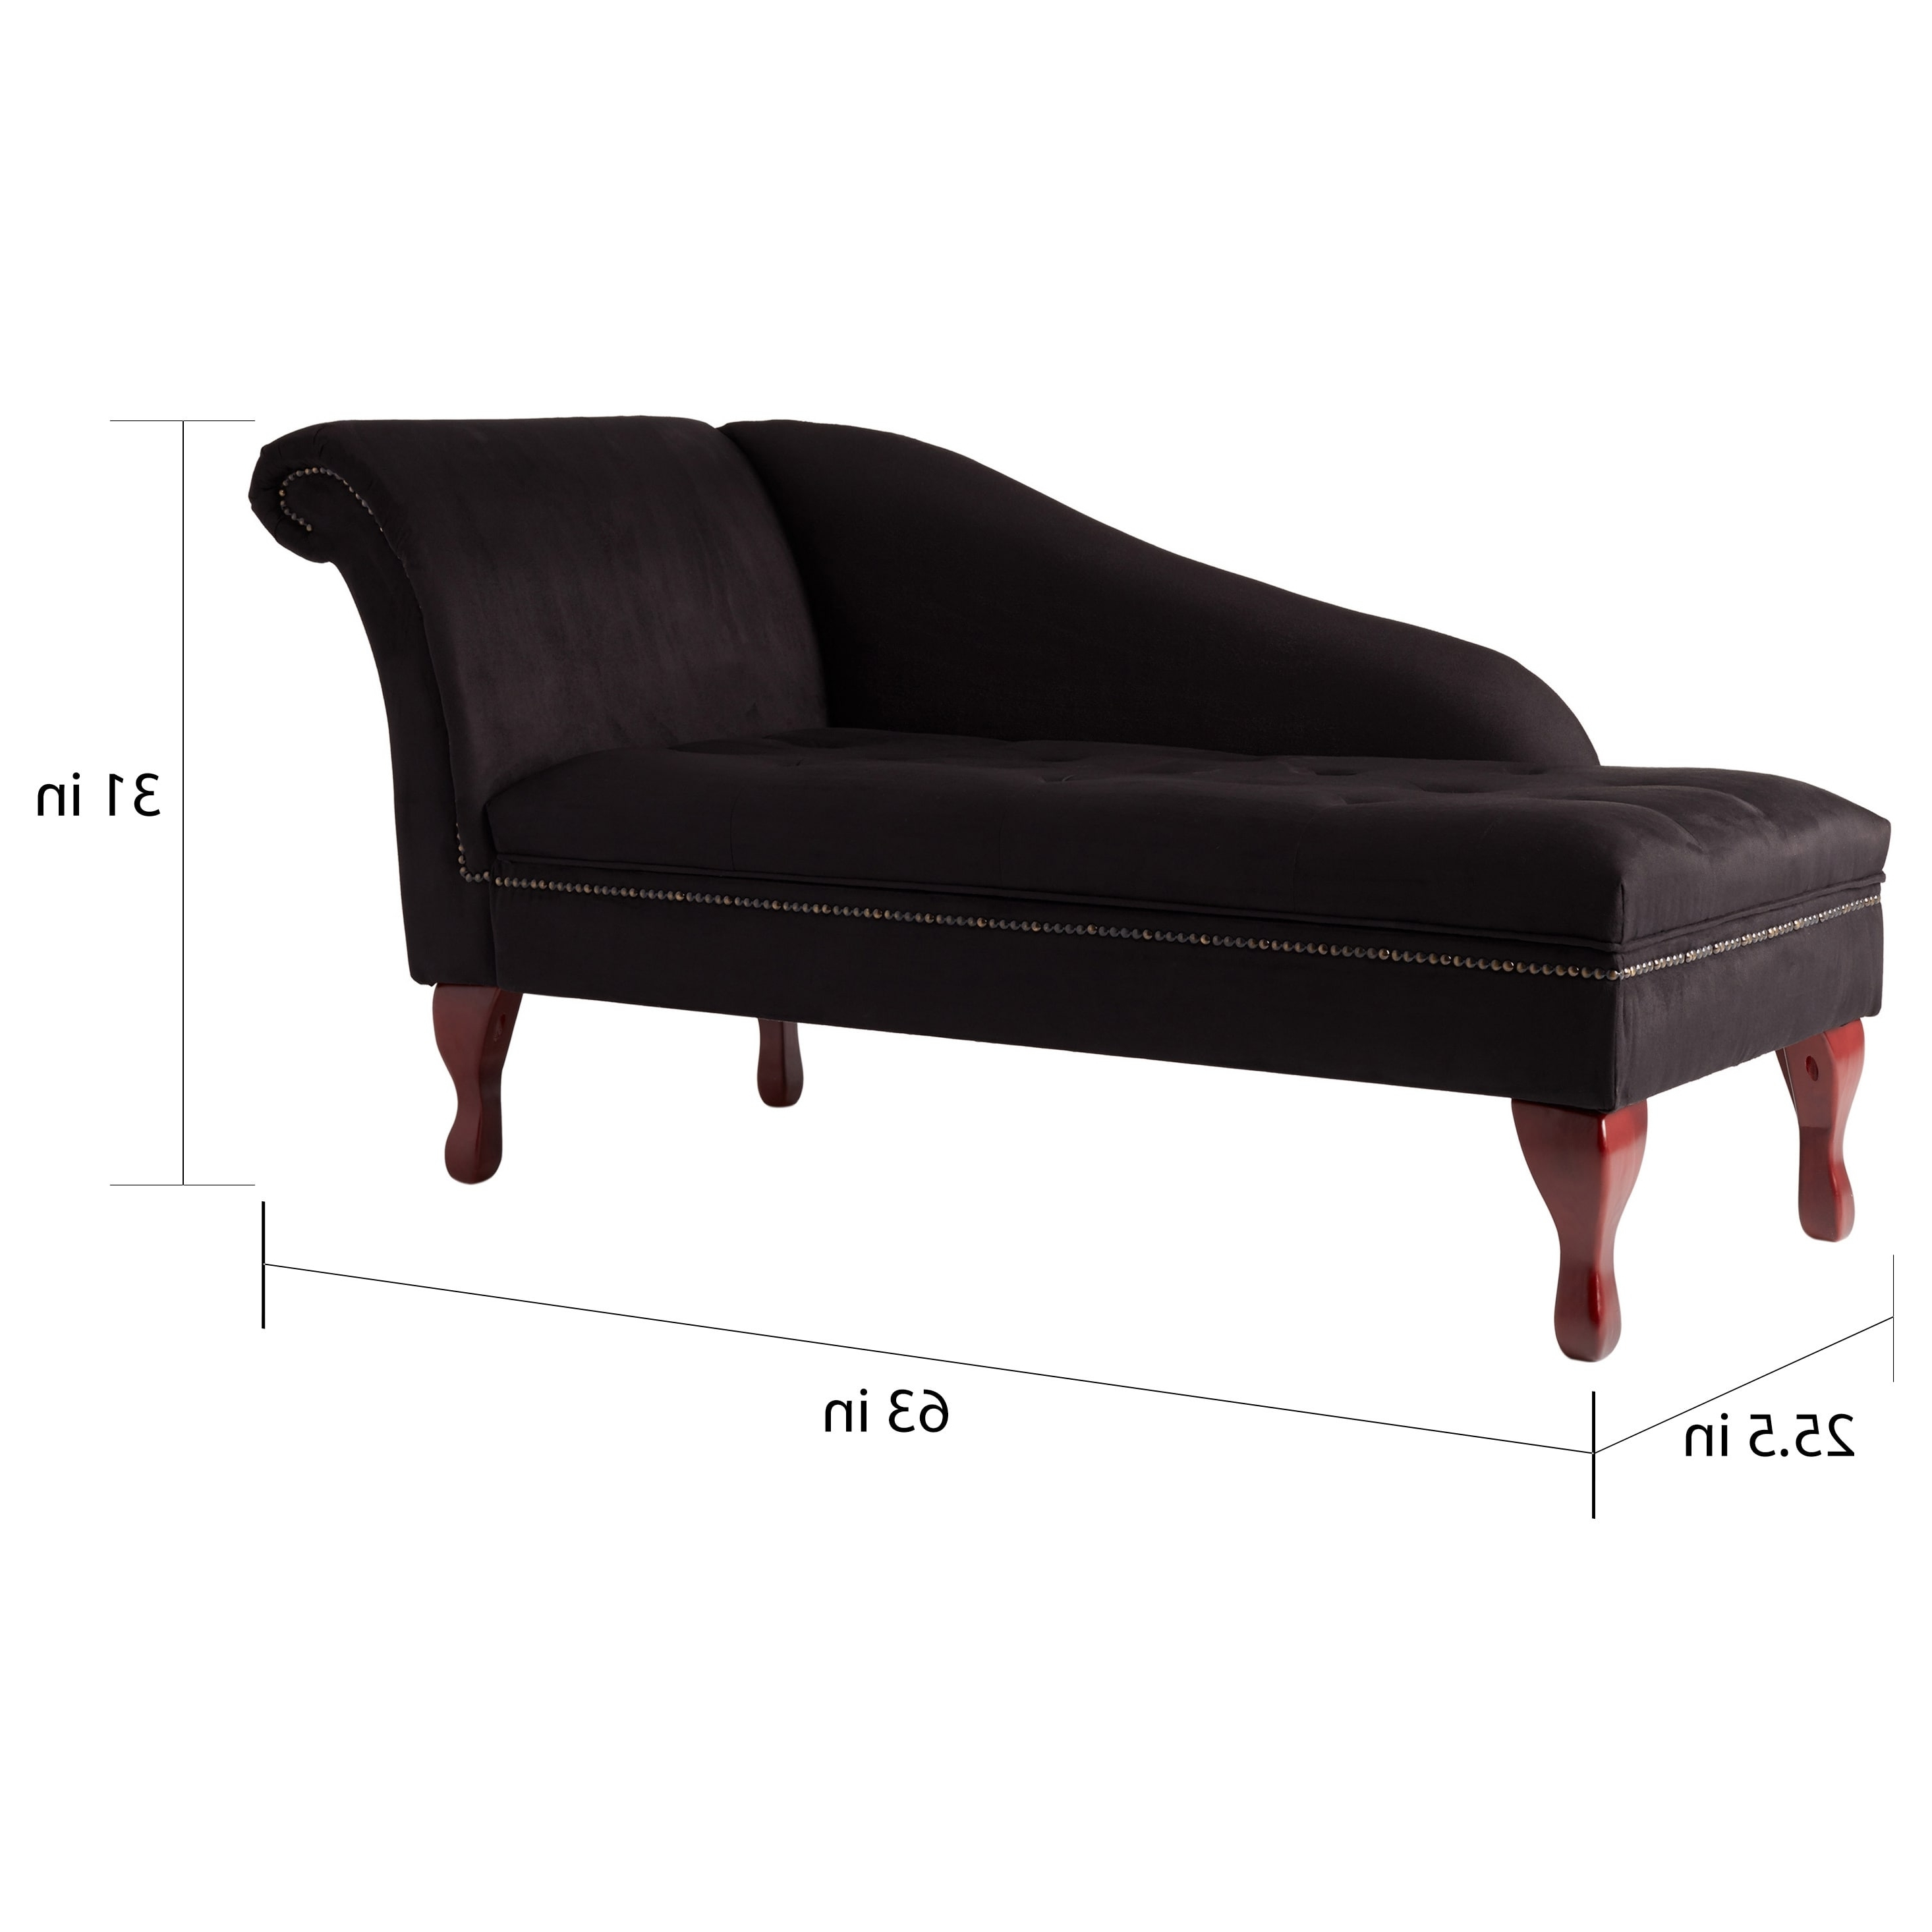 Storage Chaise Lounges Within Favorite Simple Living Black Storage Chaise Lounge – Free Shipping Today (View 14 of 15)